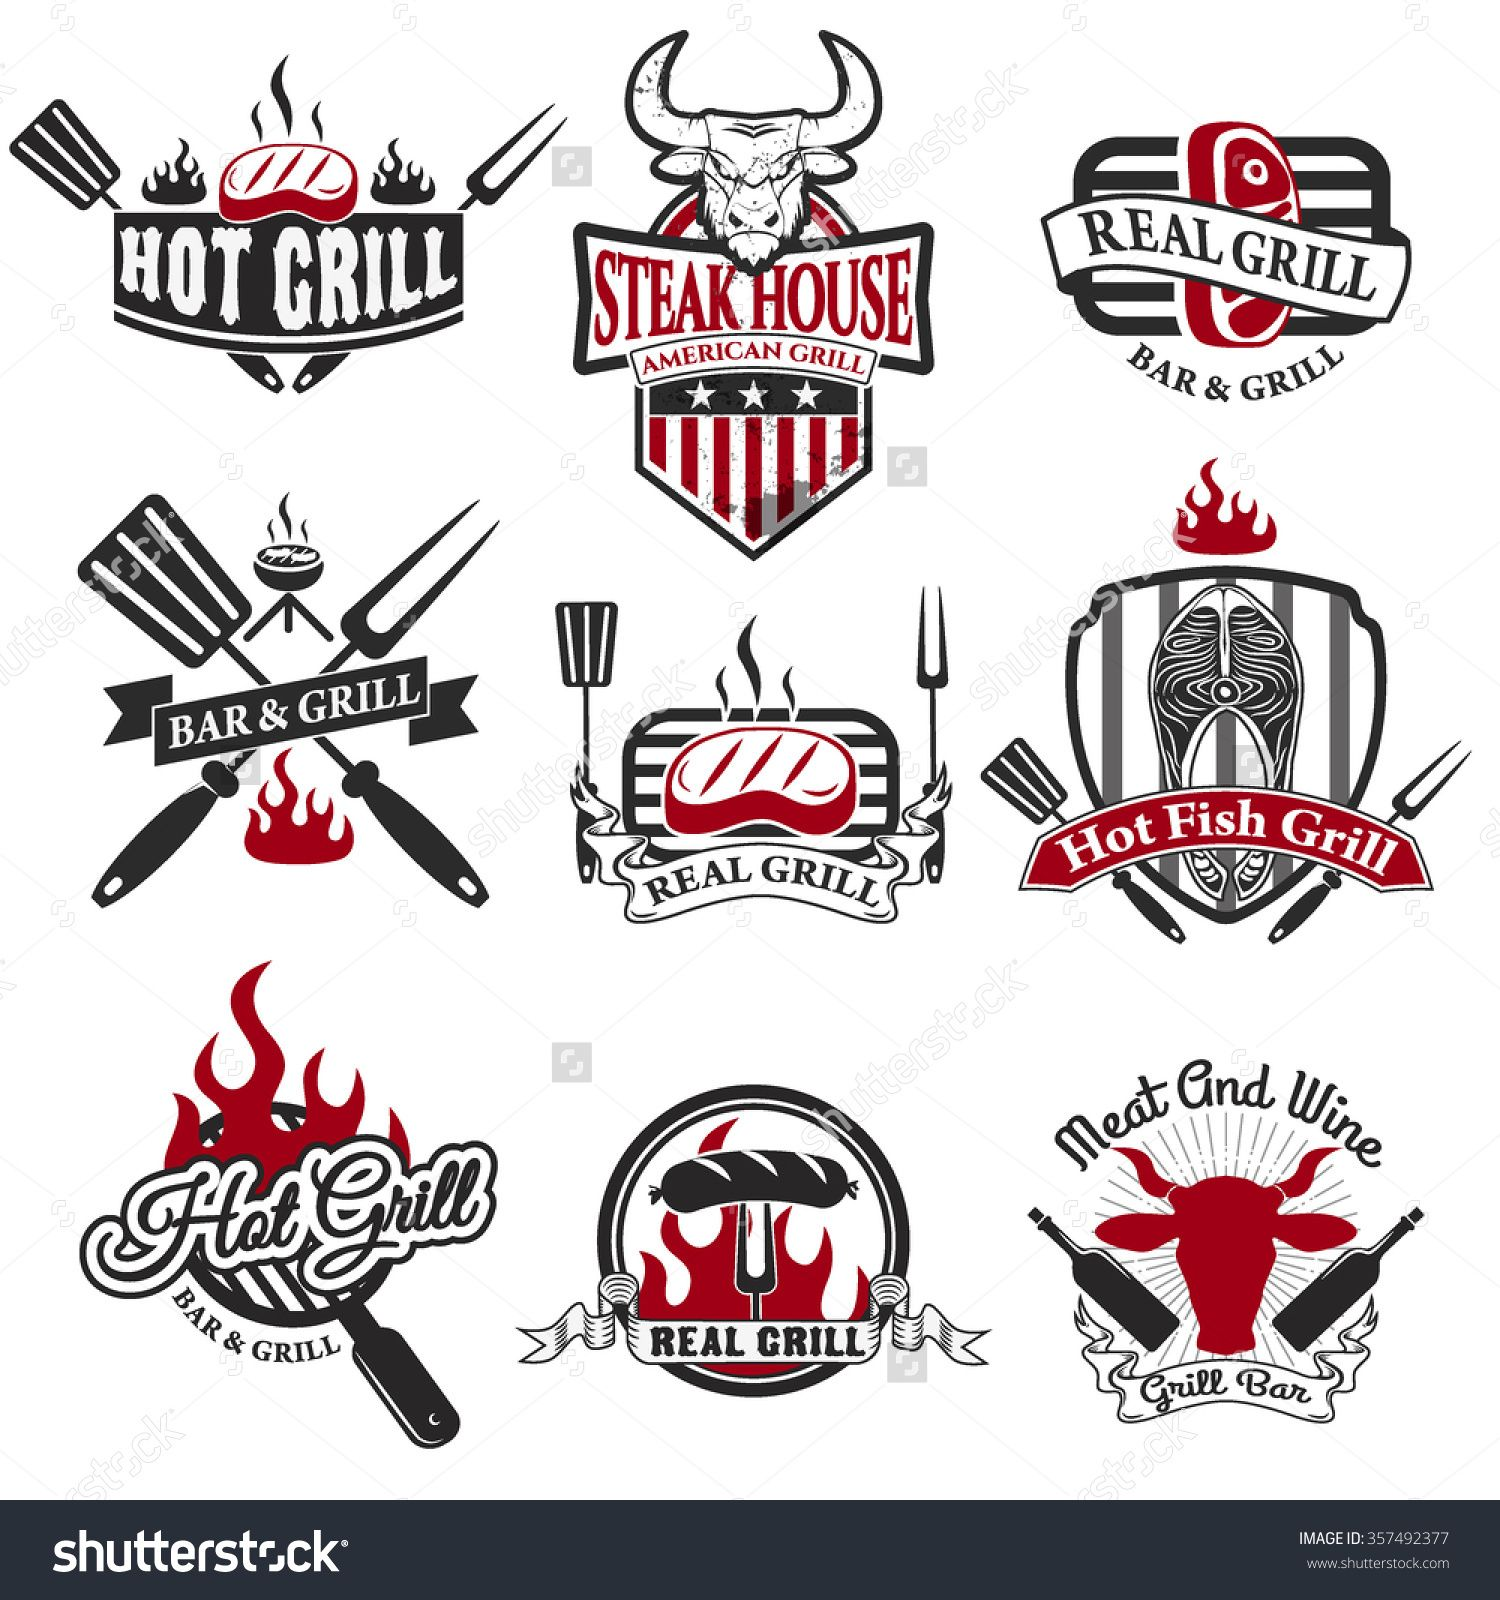 Set of grill bar labels logos and badges templates steak house restaurant logos buycottarizona Image collections